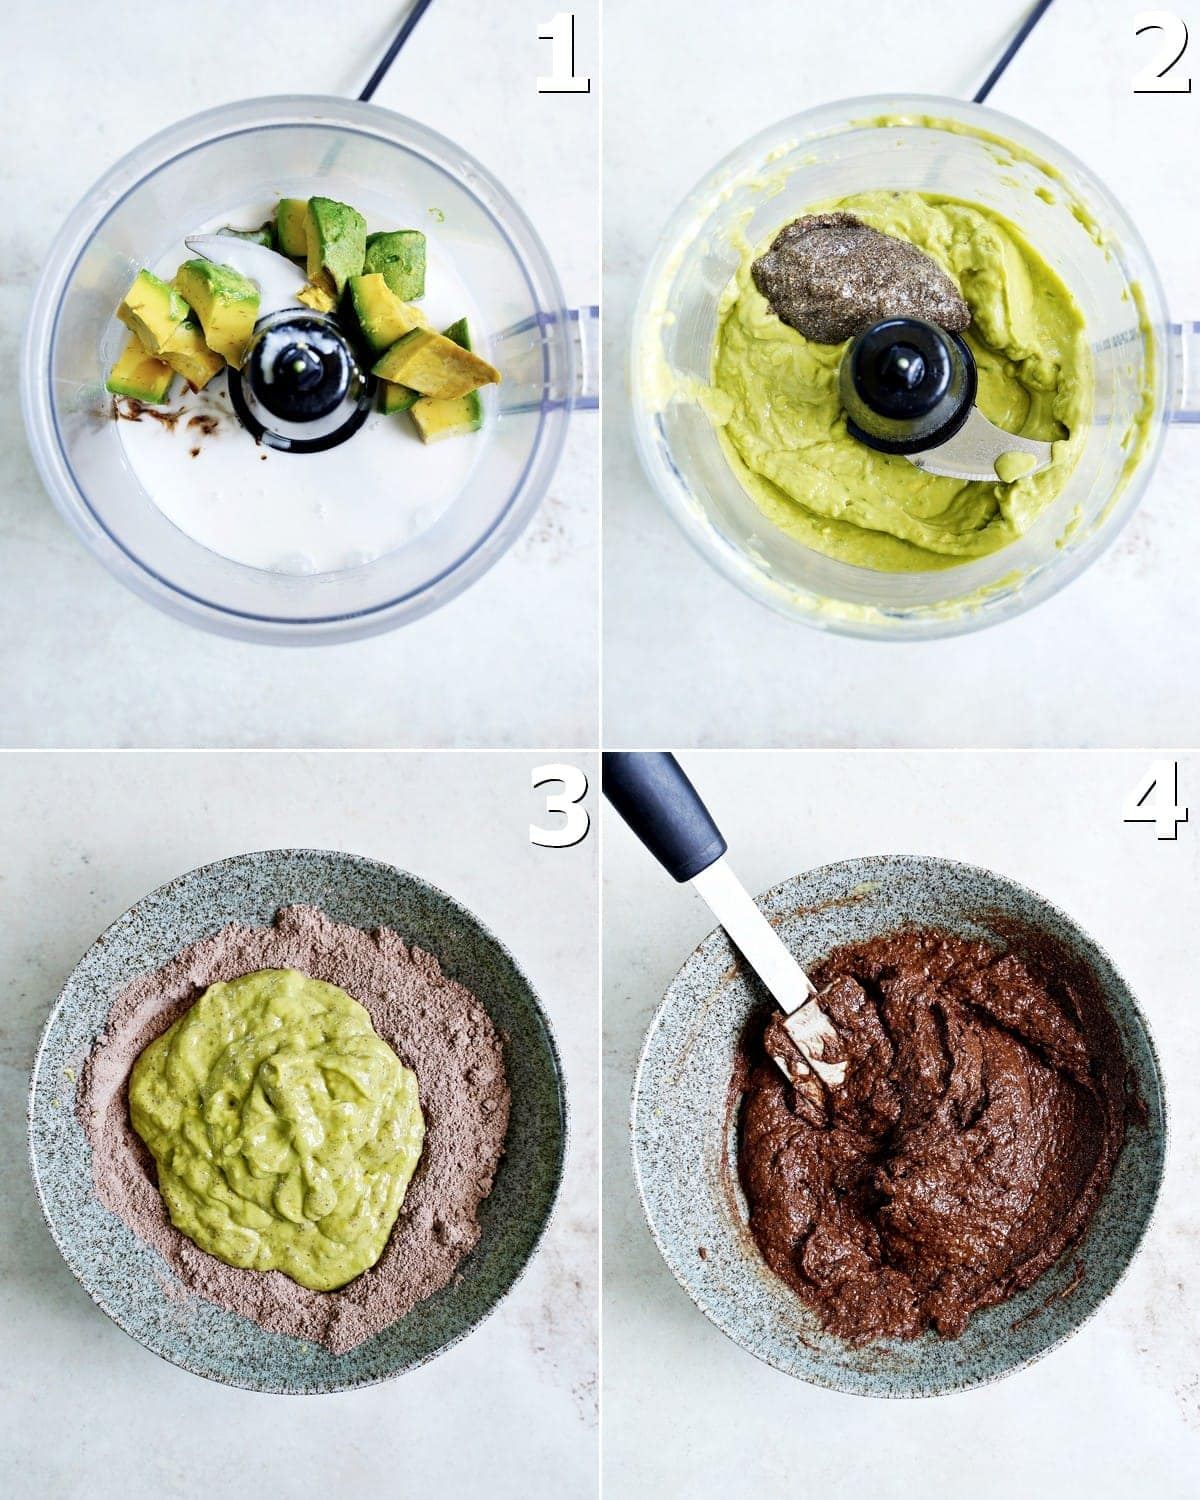 4 step-by-step photos of blending avocado with wet ingredients and combining wet and dry in bowl